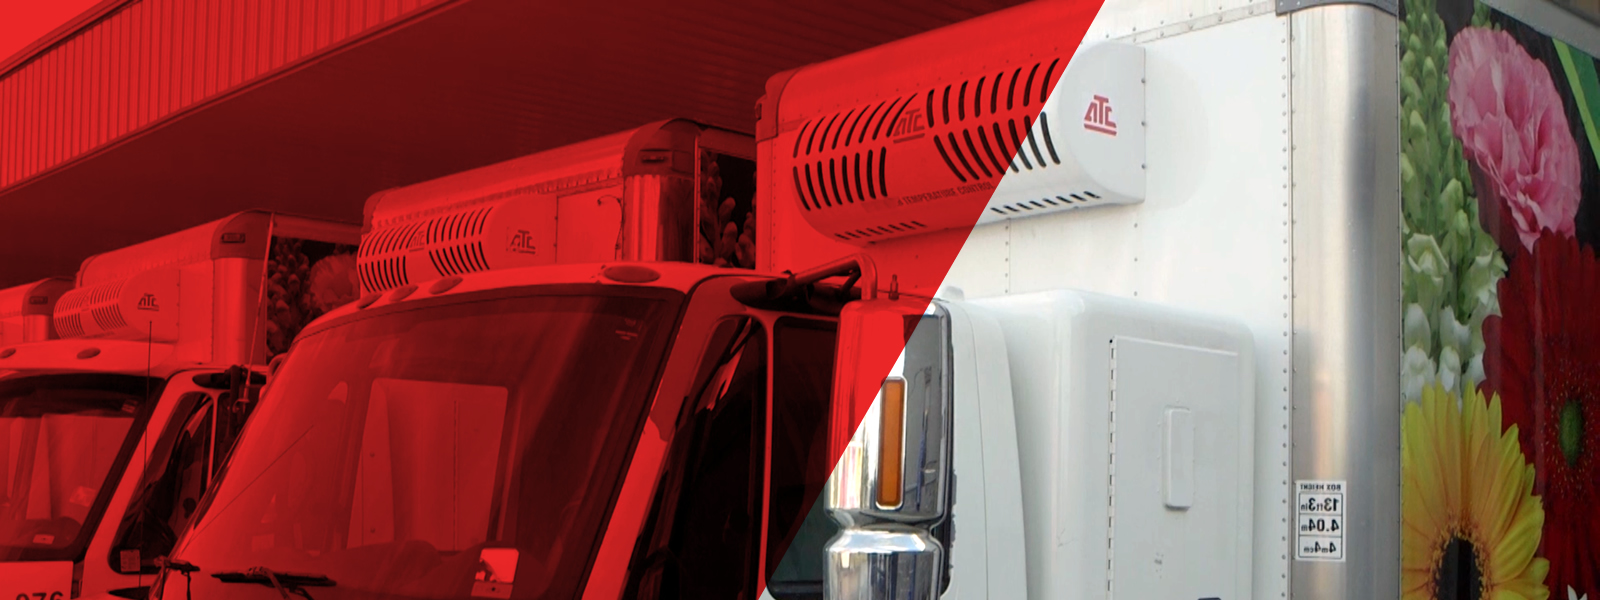 Nose mount systems designed for medium to large boxed trucks and trailers to support a variety of urban delivery applications with optional nose mounted electric standby.